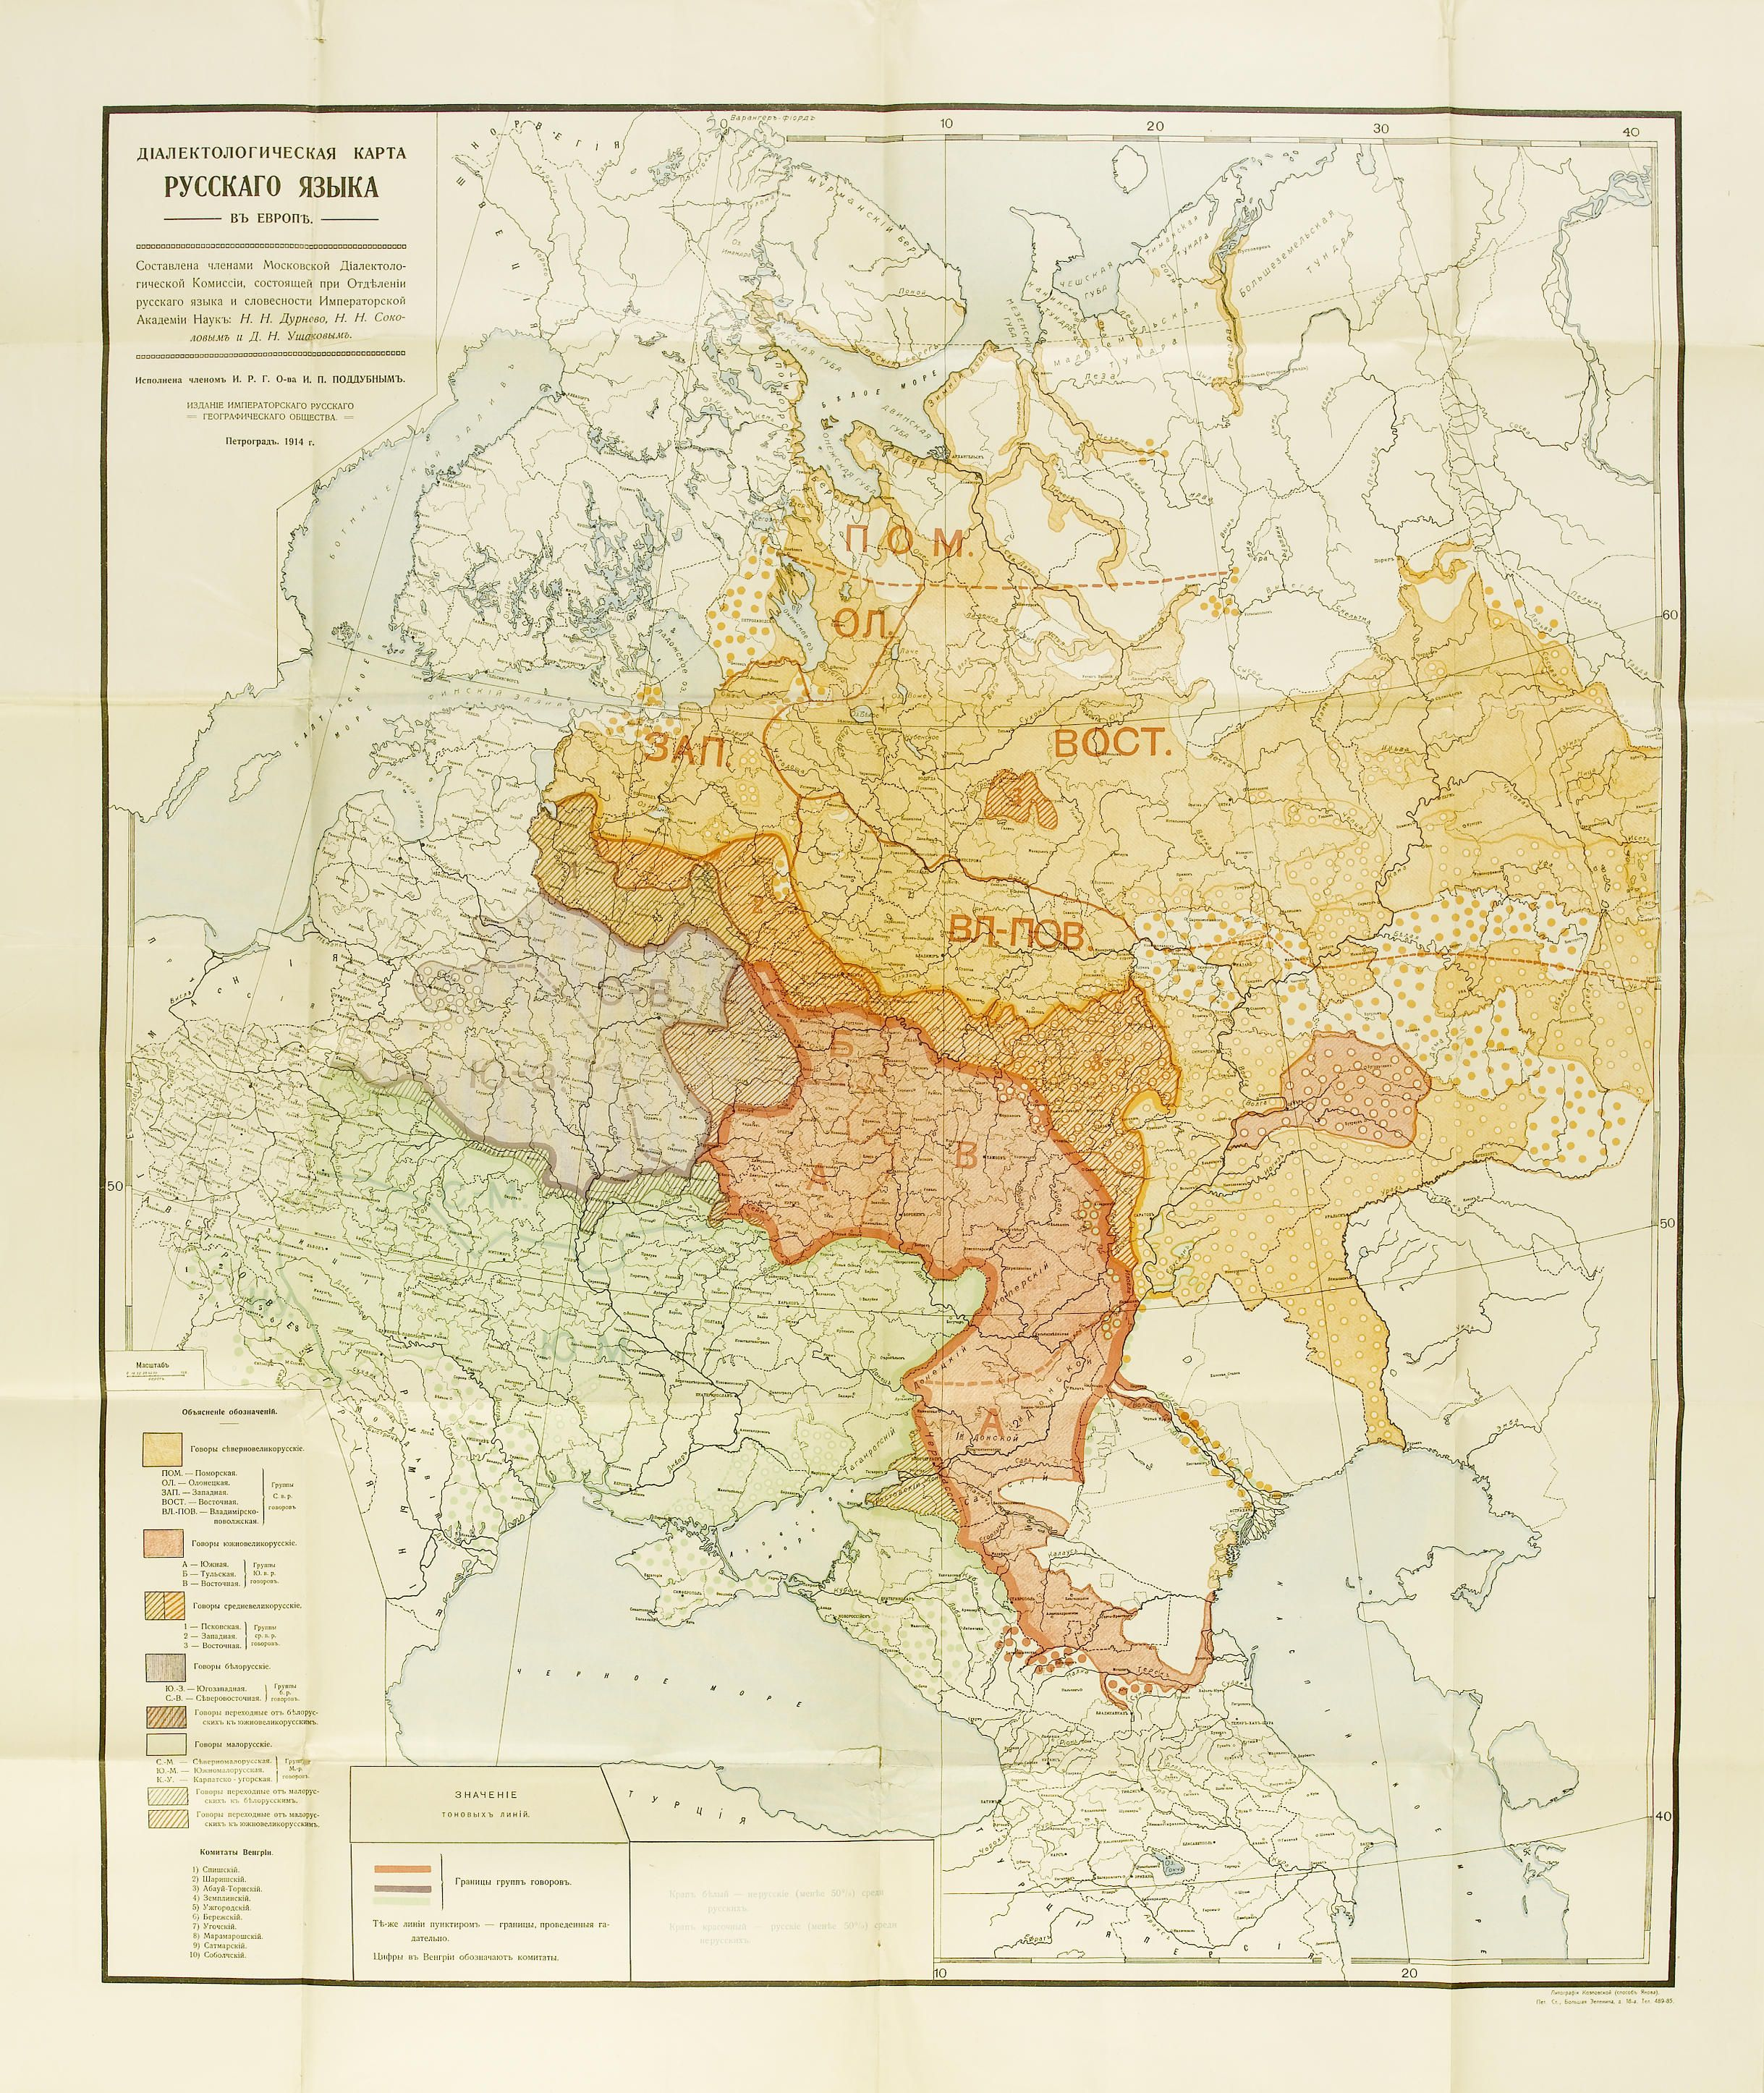 A 1914 map of the russian language map europe russia a 1914 map of the russian language map europe russia gumiabroncs Images